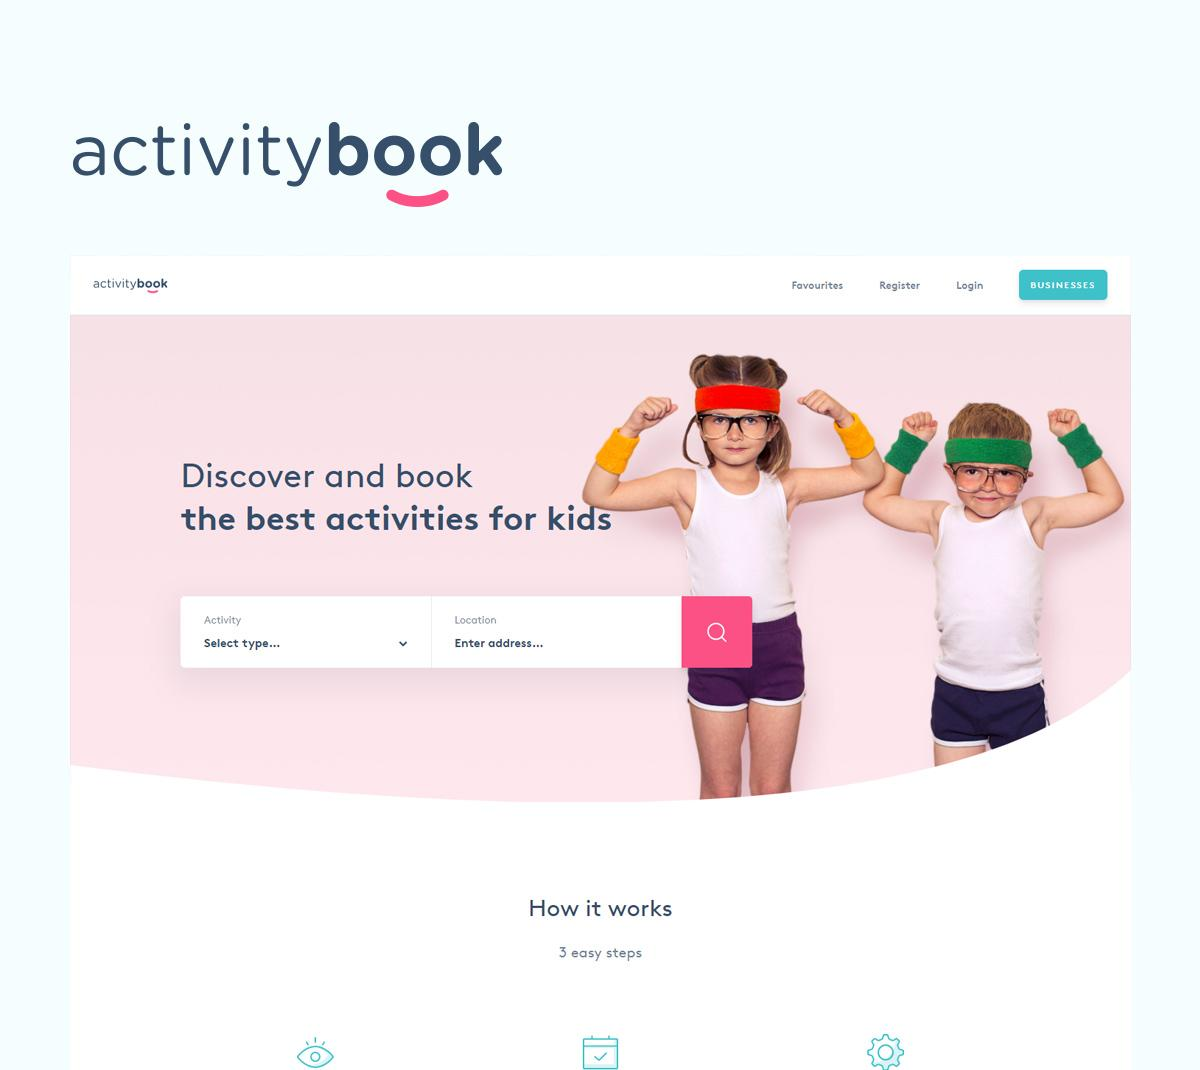 Cocolabs_images_portfolio_ActivityBook-small-02.jpg